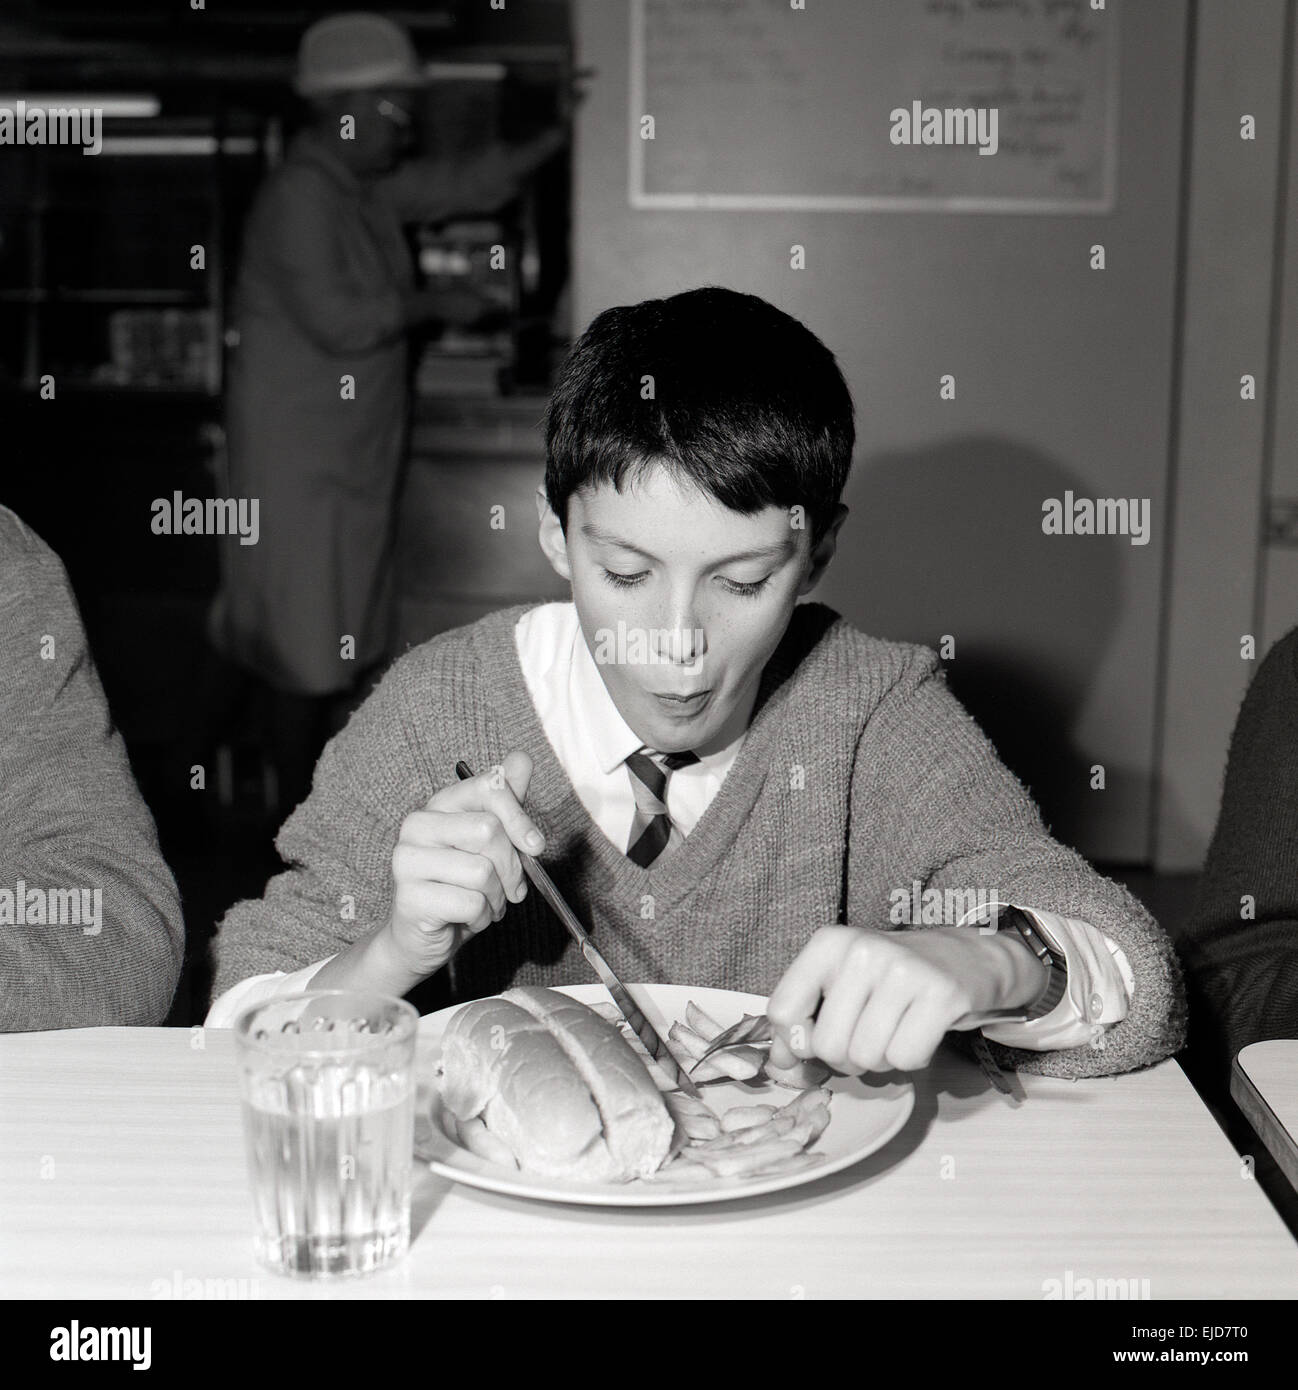 A black and white 1990s archival image of a boy wearing a school uniform sitting at a table eating school dinner - Stock Image